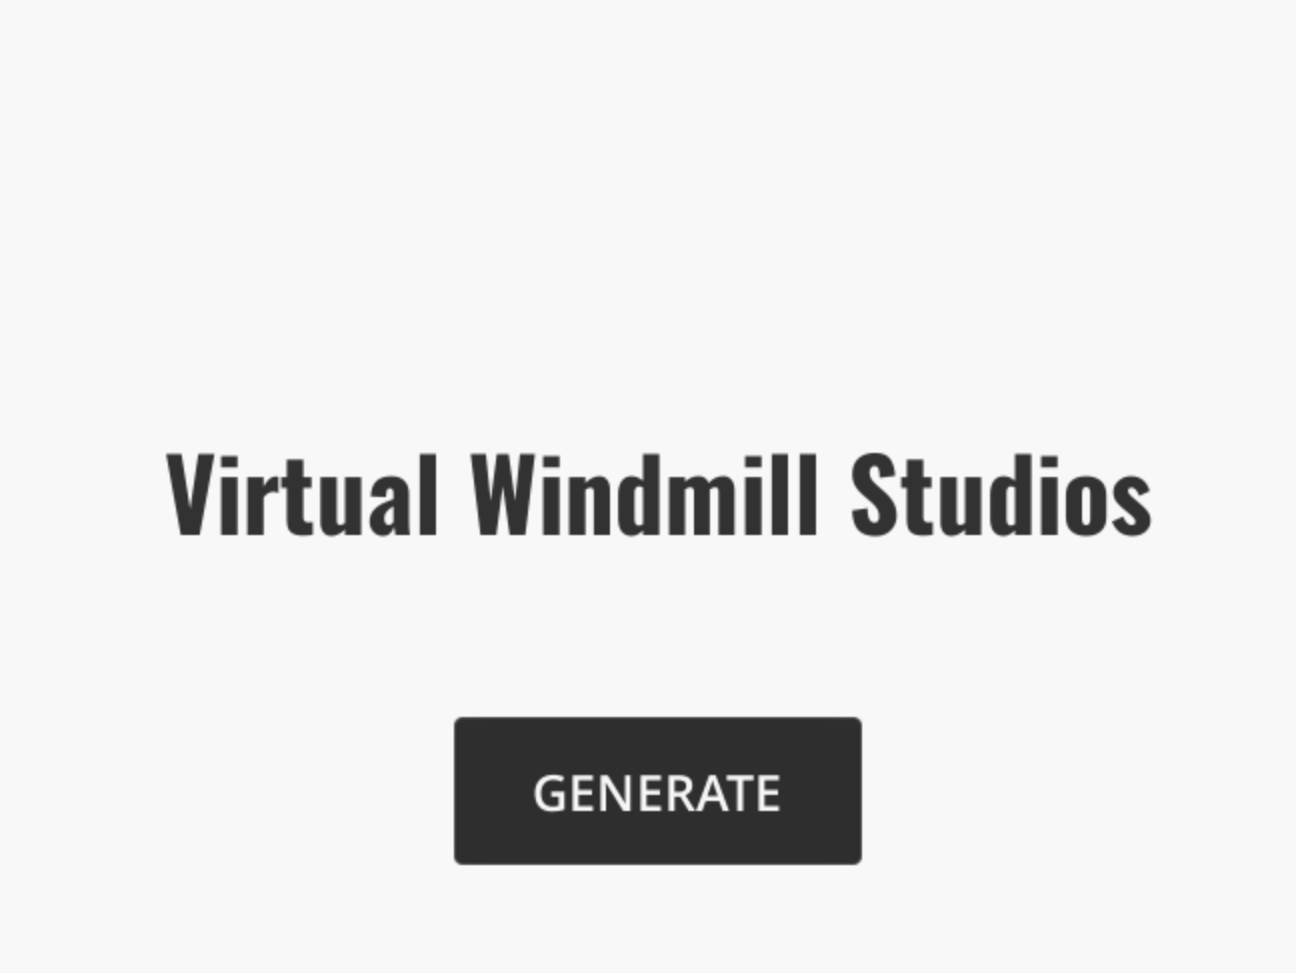 Generated VR Game Studio Name